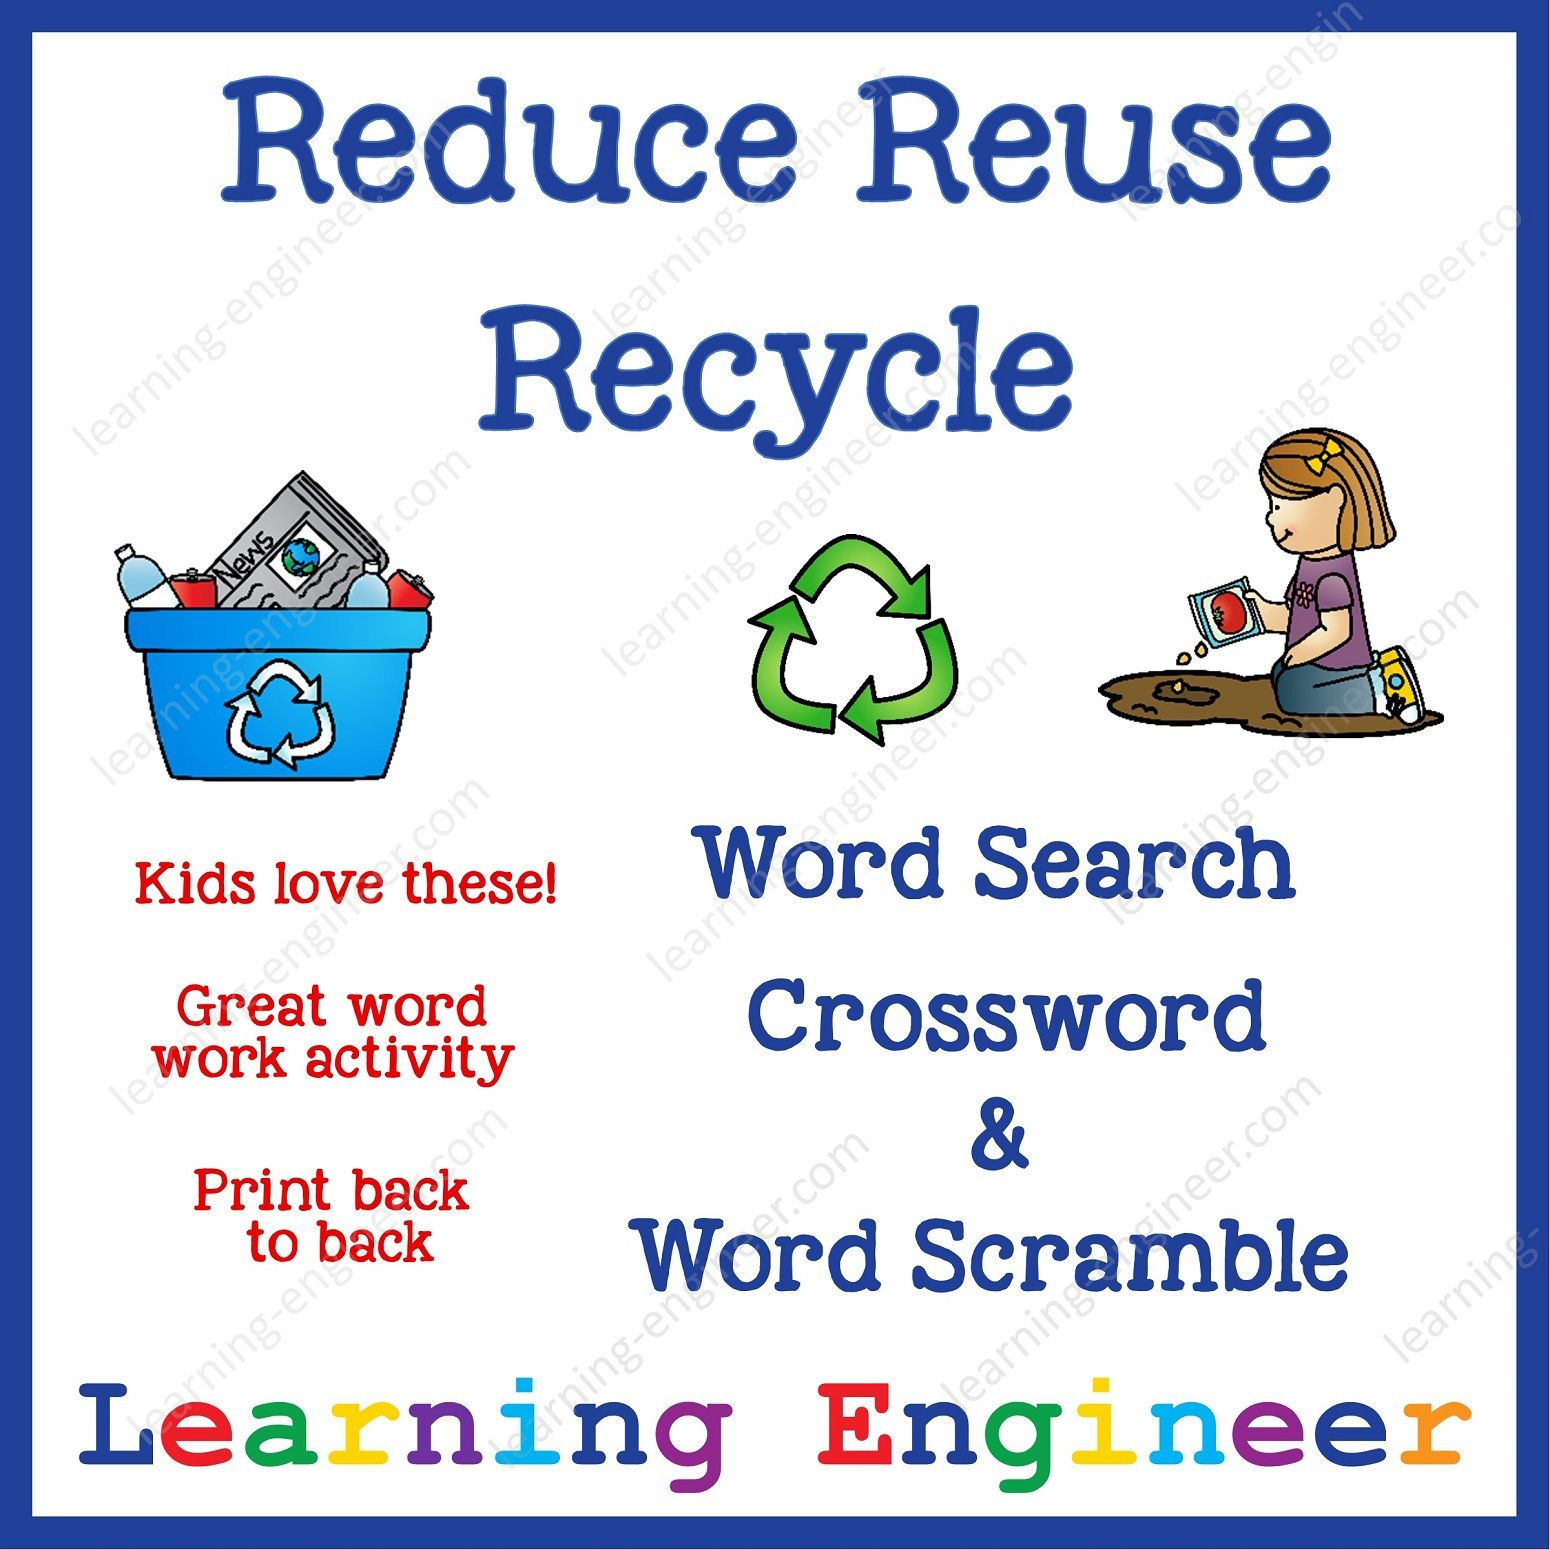 Reduce Reuse Recycle Word Search Word Scramble And